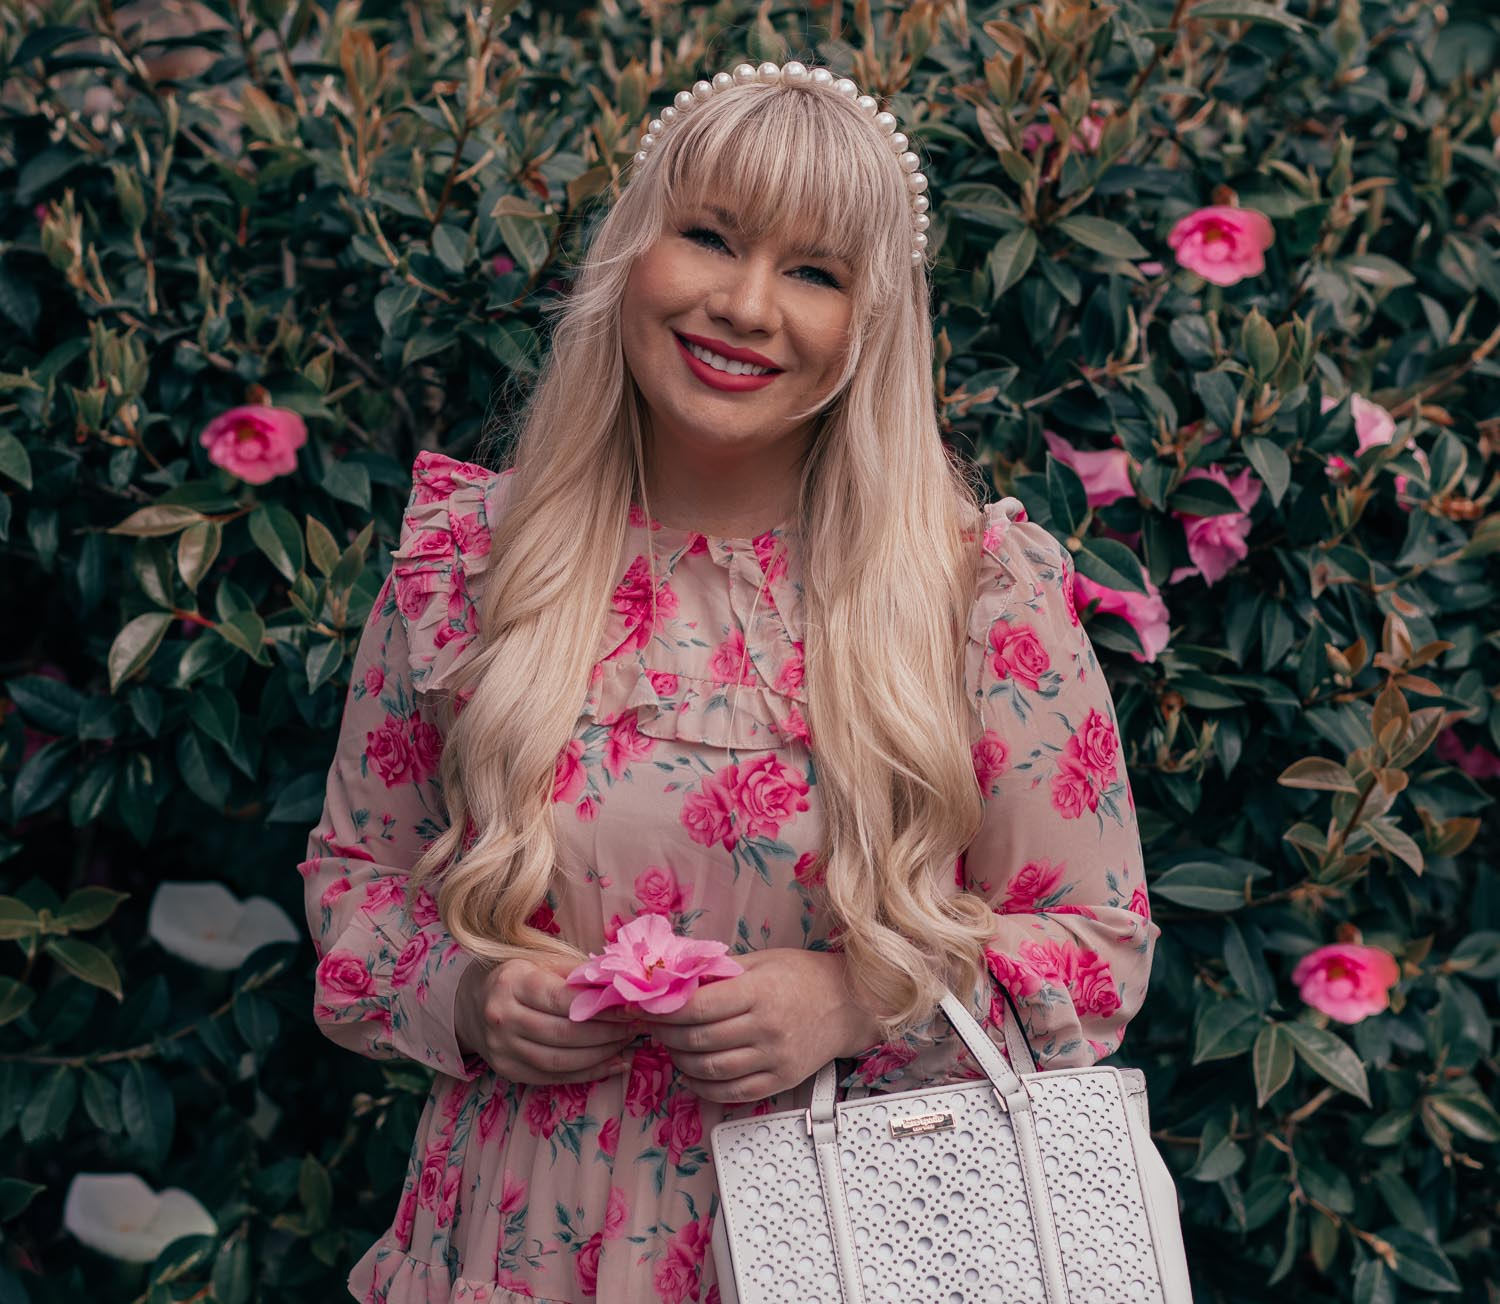 Feminine Fashion Blogger Elizabeth Hugen of Lizzie in Lace shares how to wear the statement collar trend along with a summer outfit including a pink floral chicwish dress and lele sadoughi pearl headband